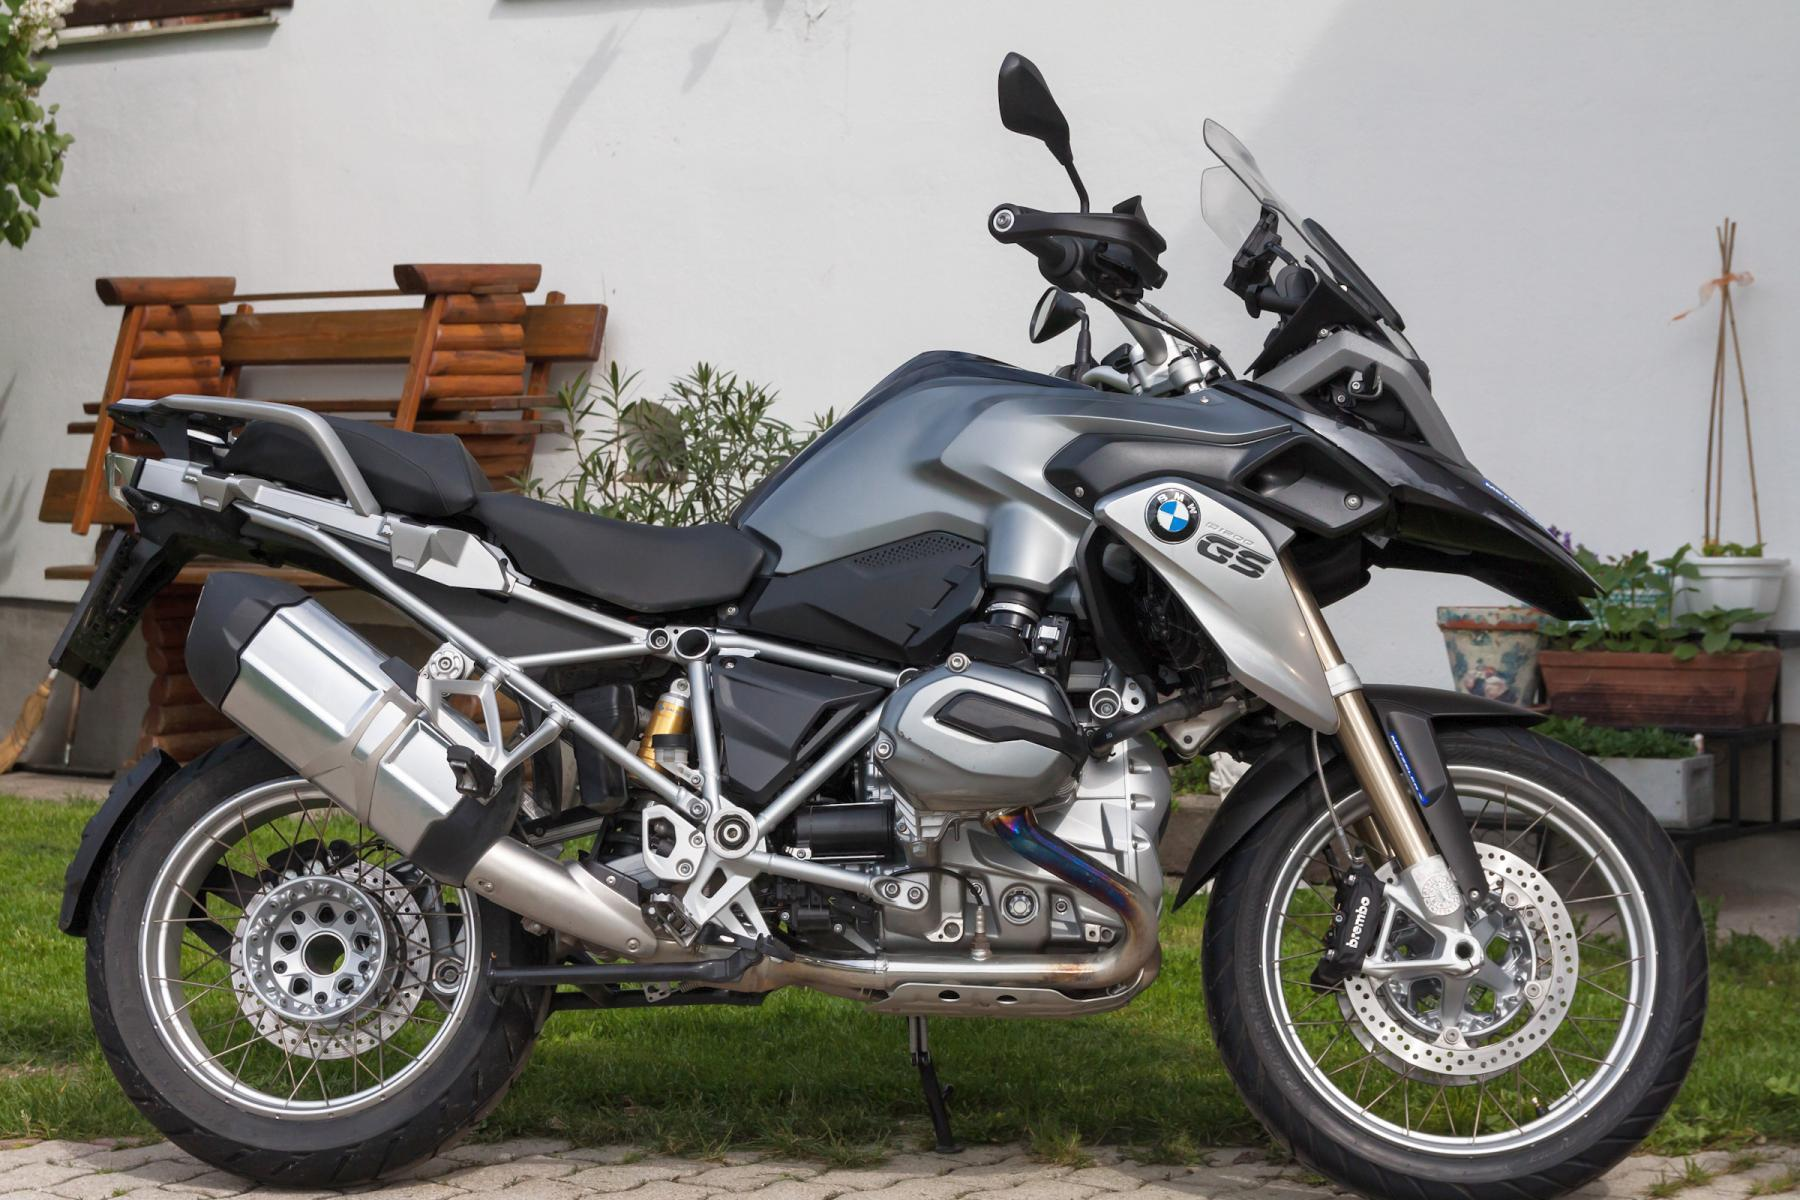 bmw r 1200 gs 2013 details motorrad fotos motorrad bilder. Black Bedroom Furniture Sets. Home Design Ideas